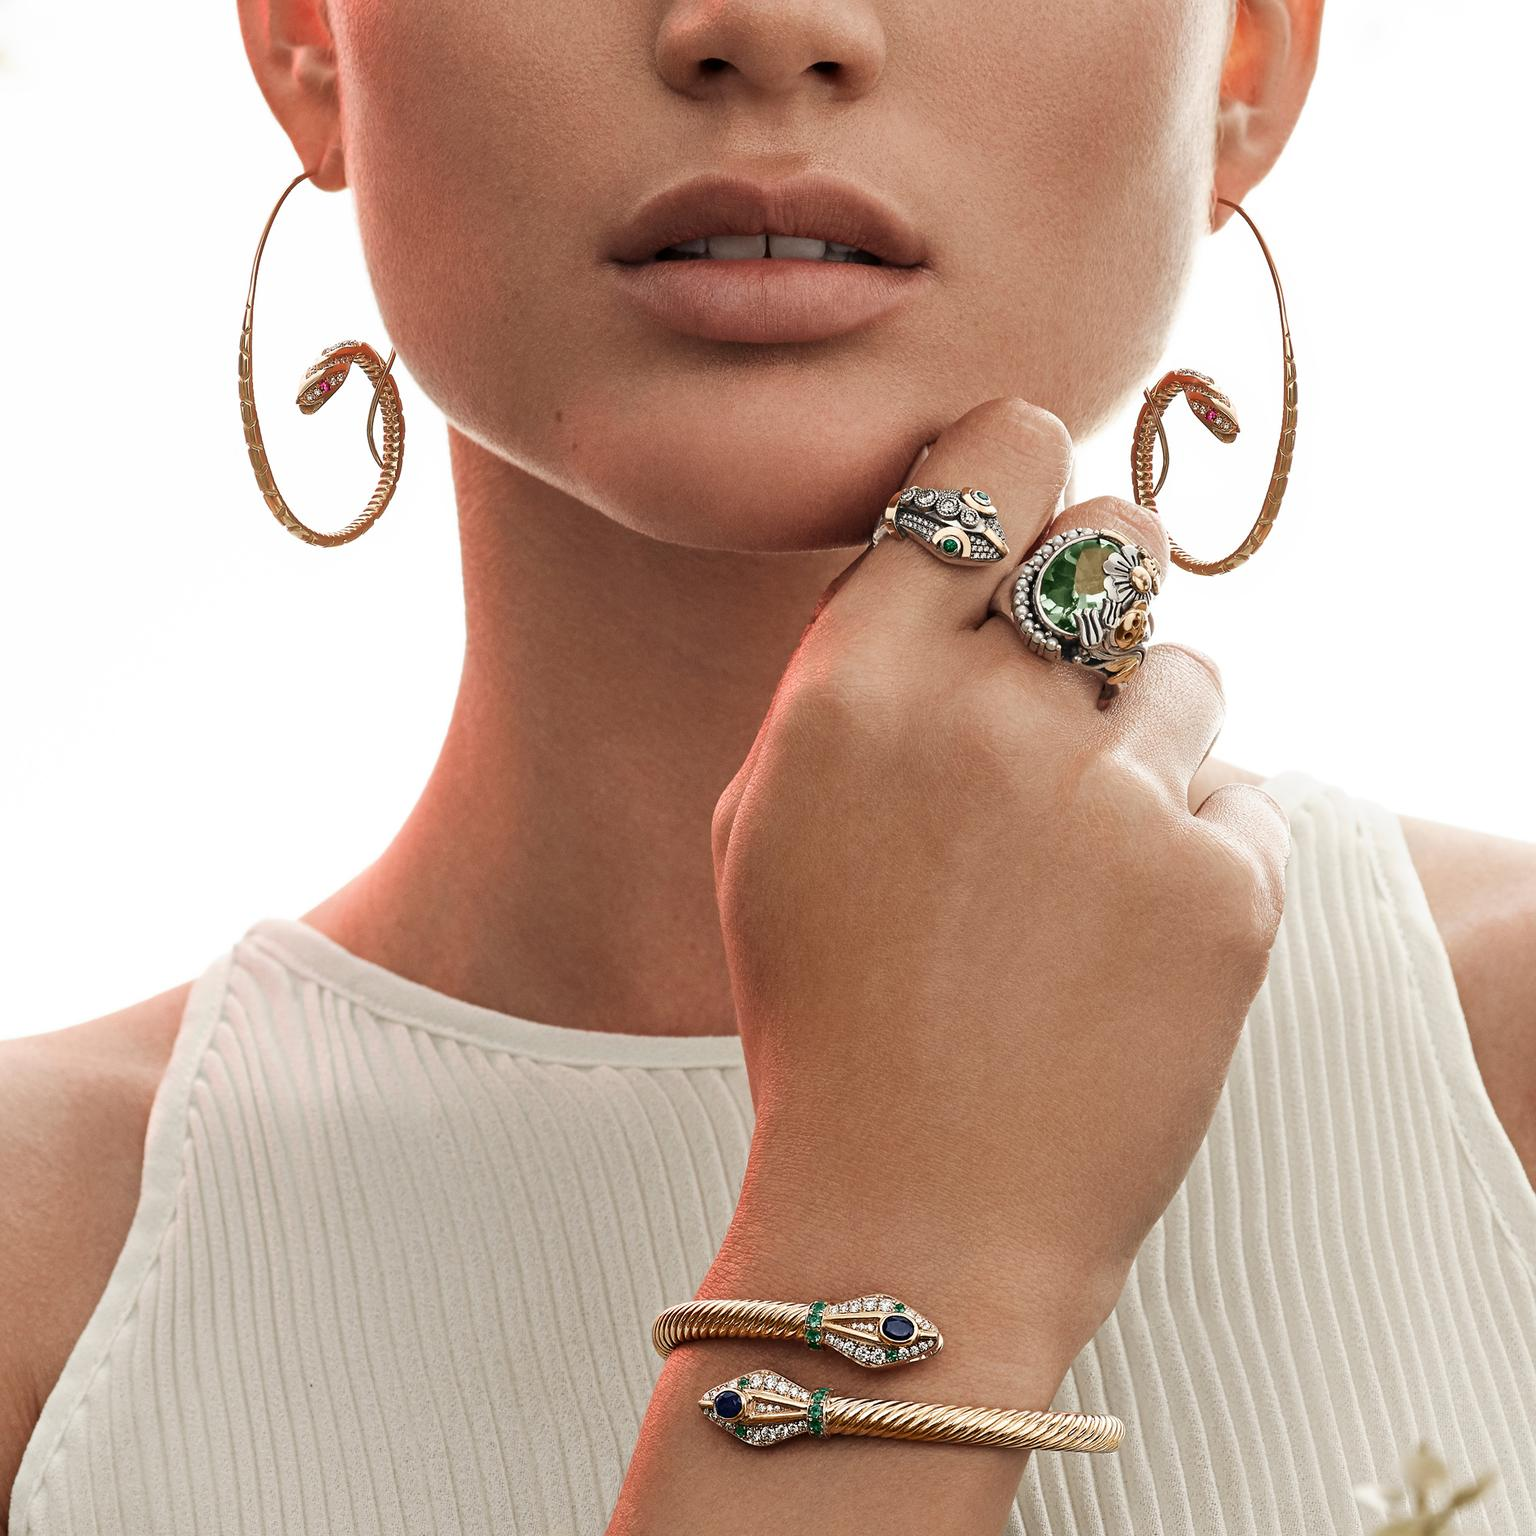 Azza Fahmy Wonders of Nature Serpent earrings, ring and bracelet